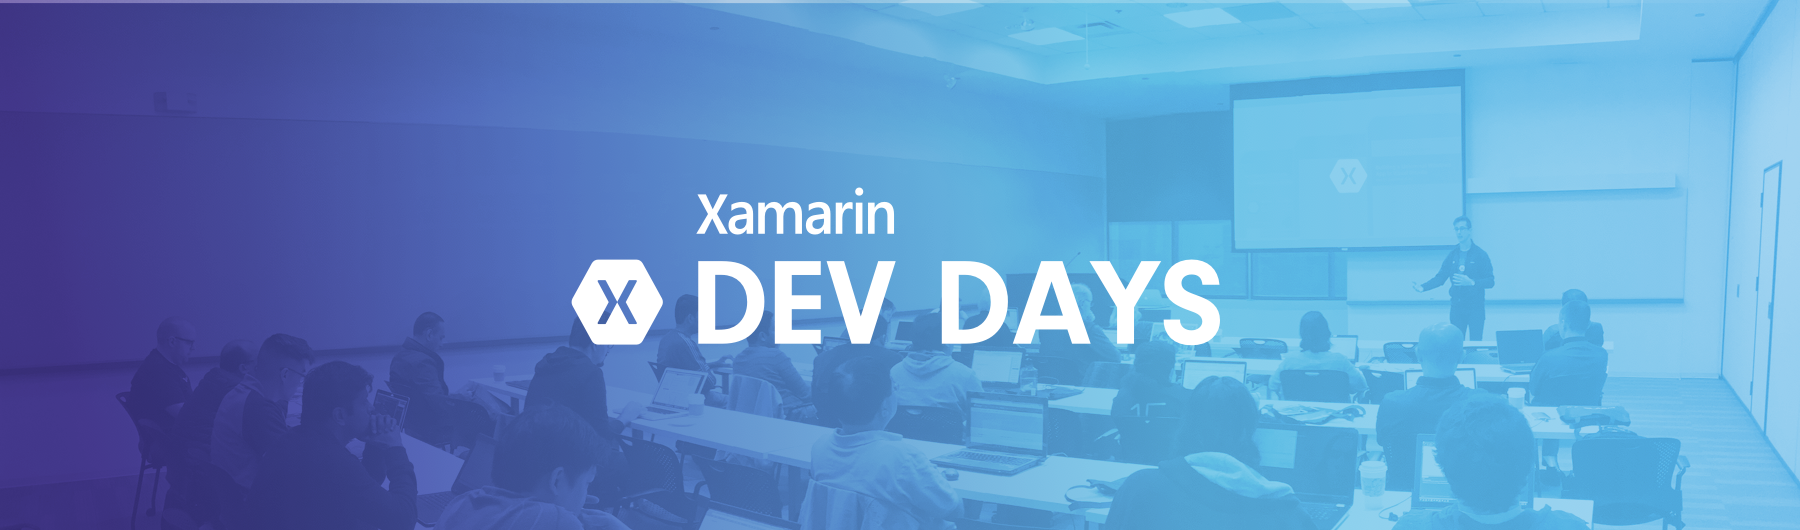 Xamarin Dev Days - Latham